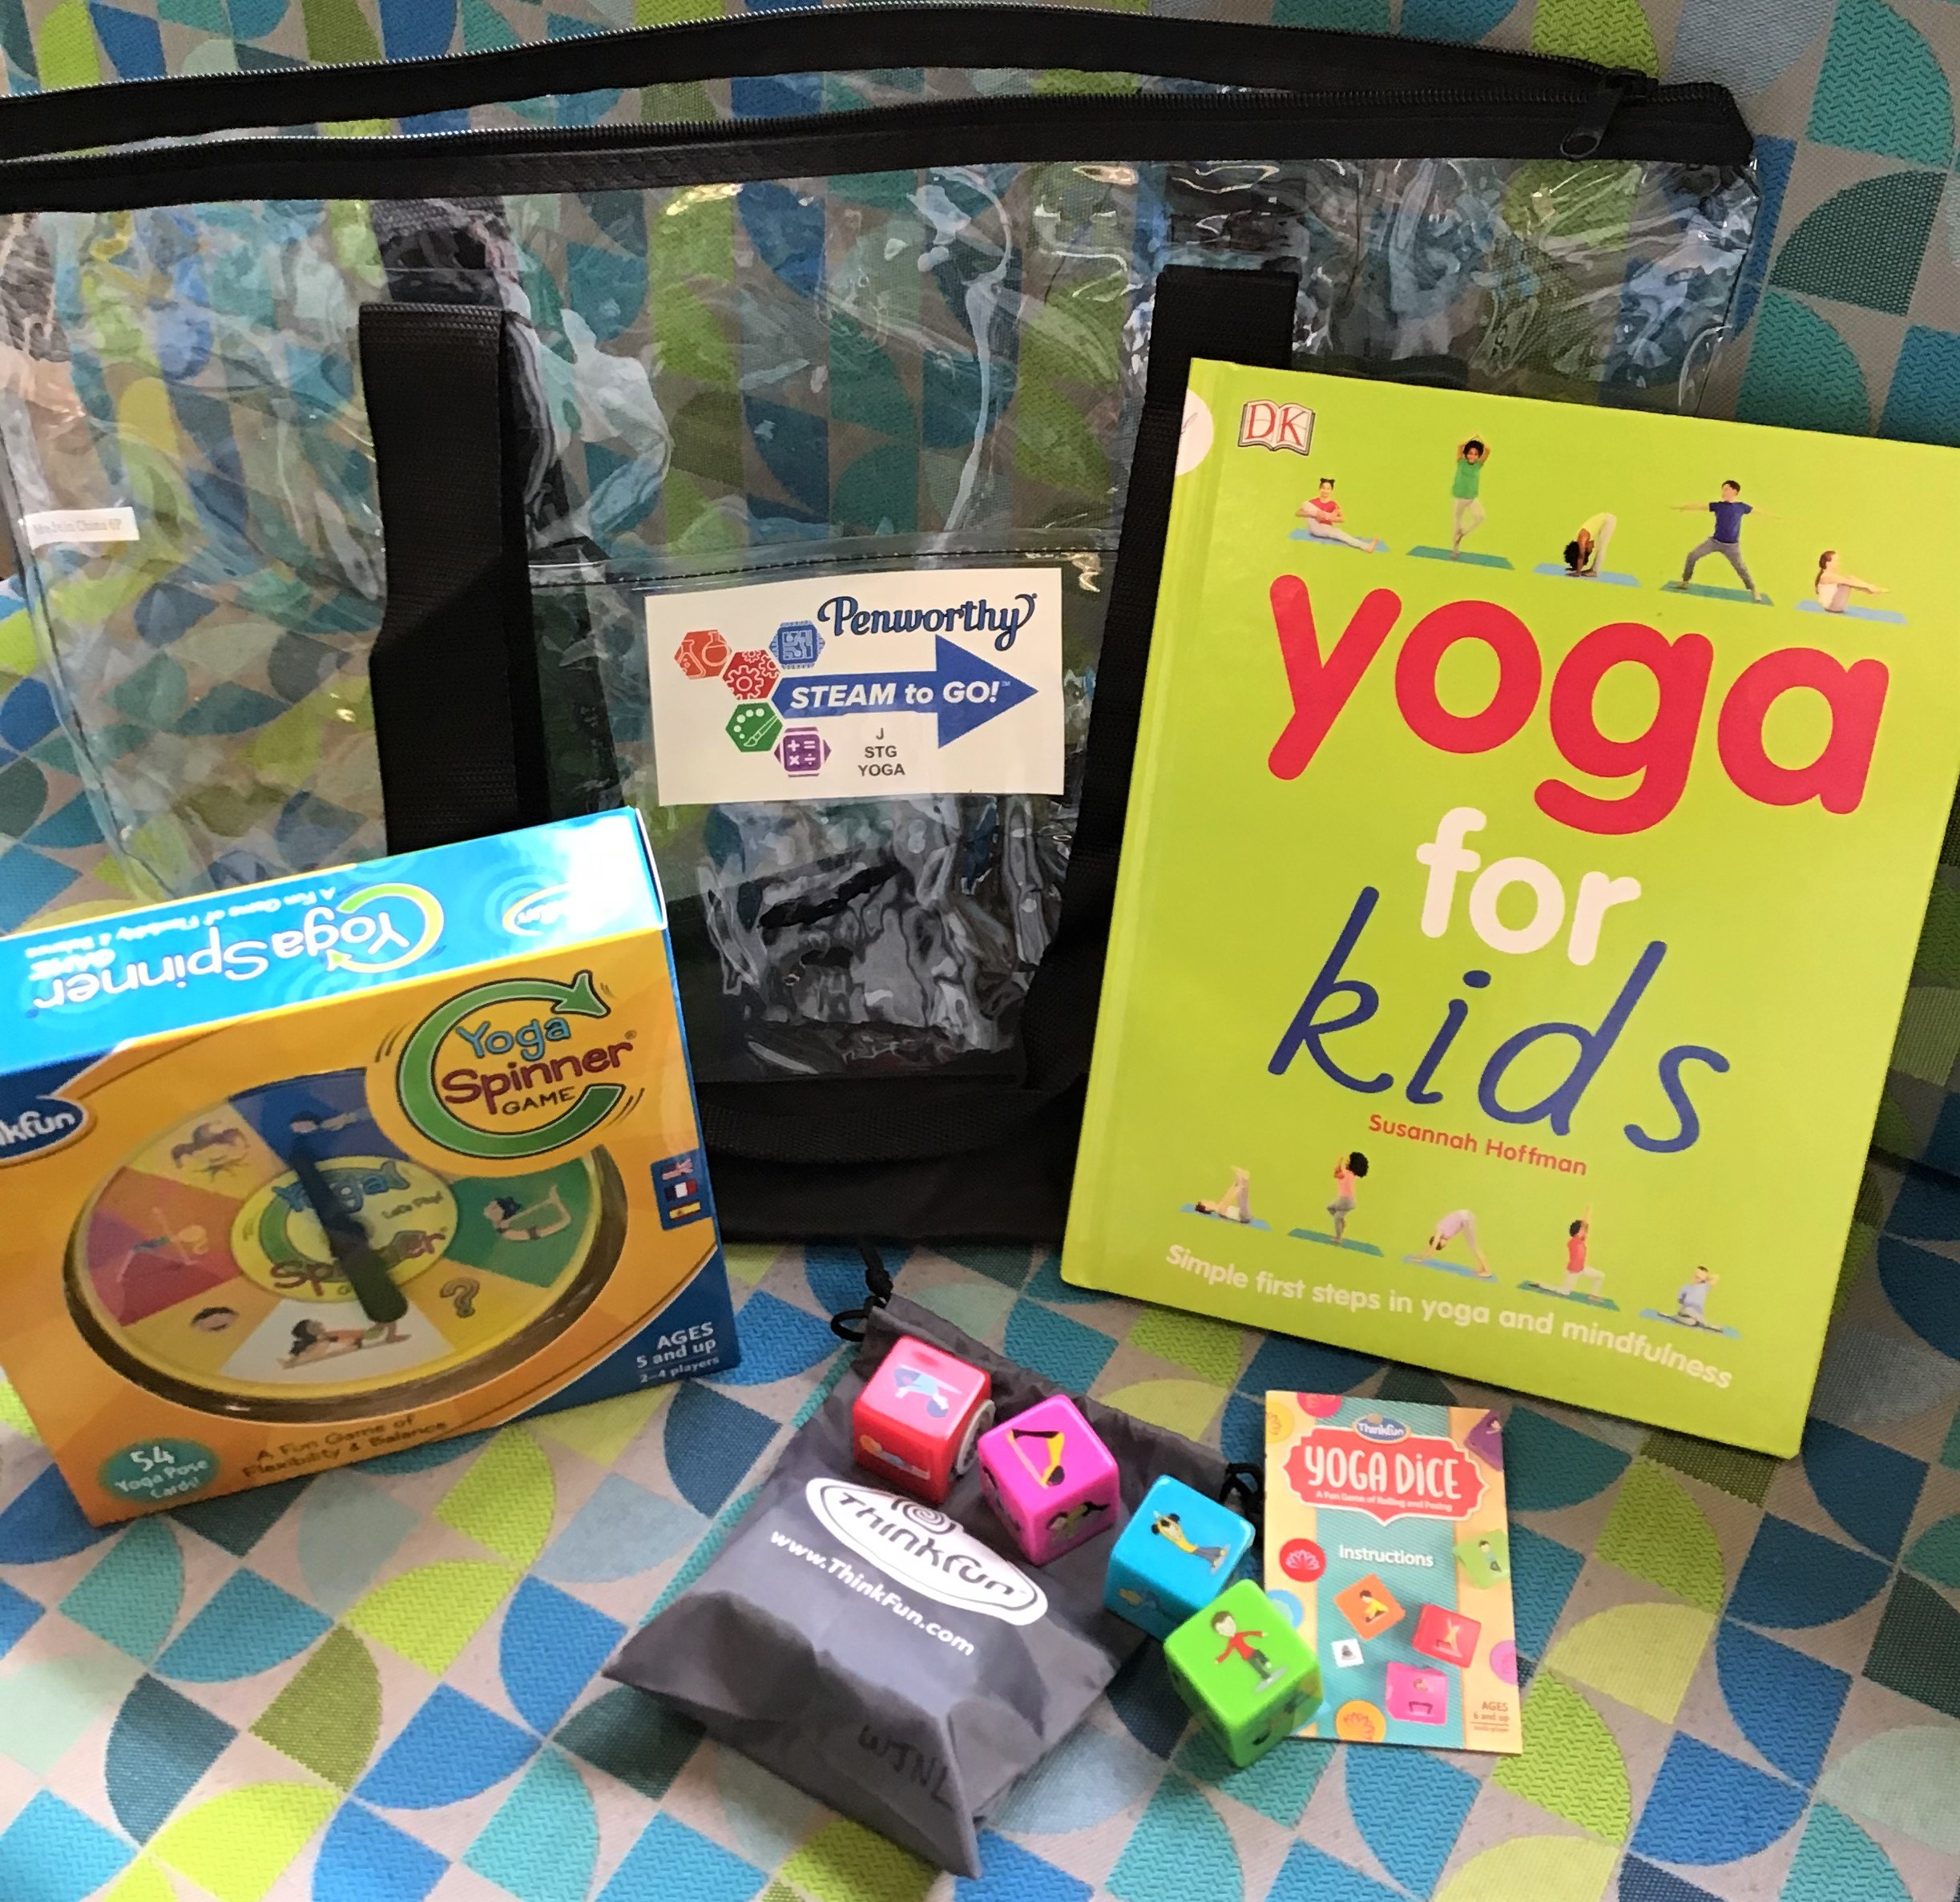 yoga for kids steam-to-go kit, yoga games and materials and book